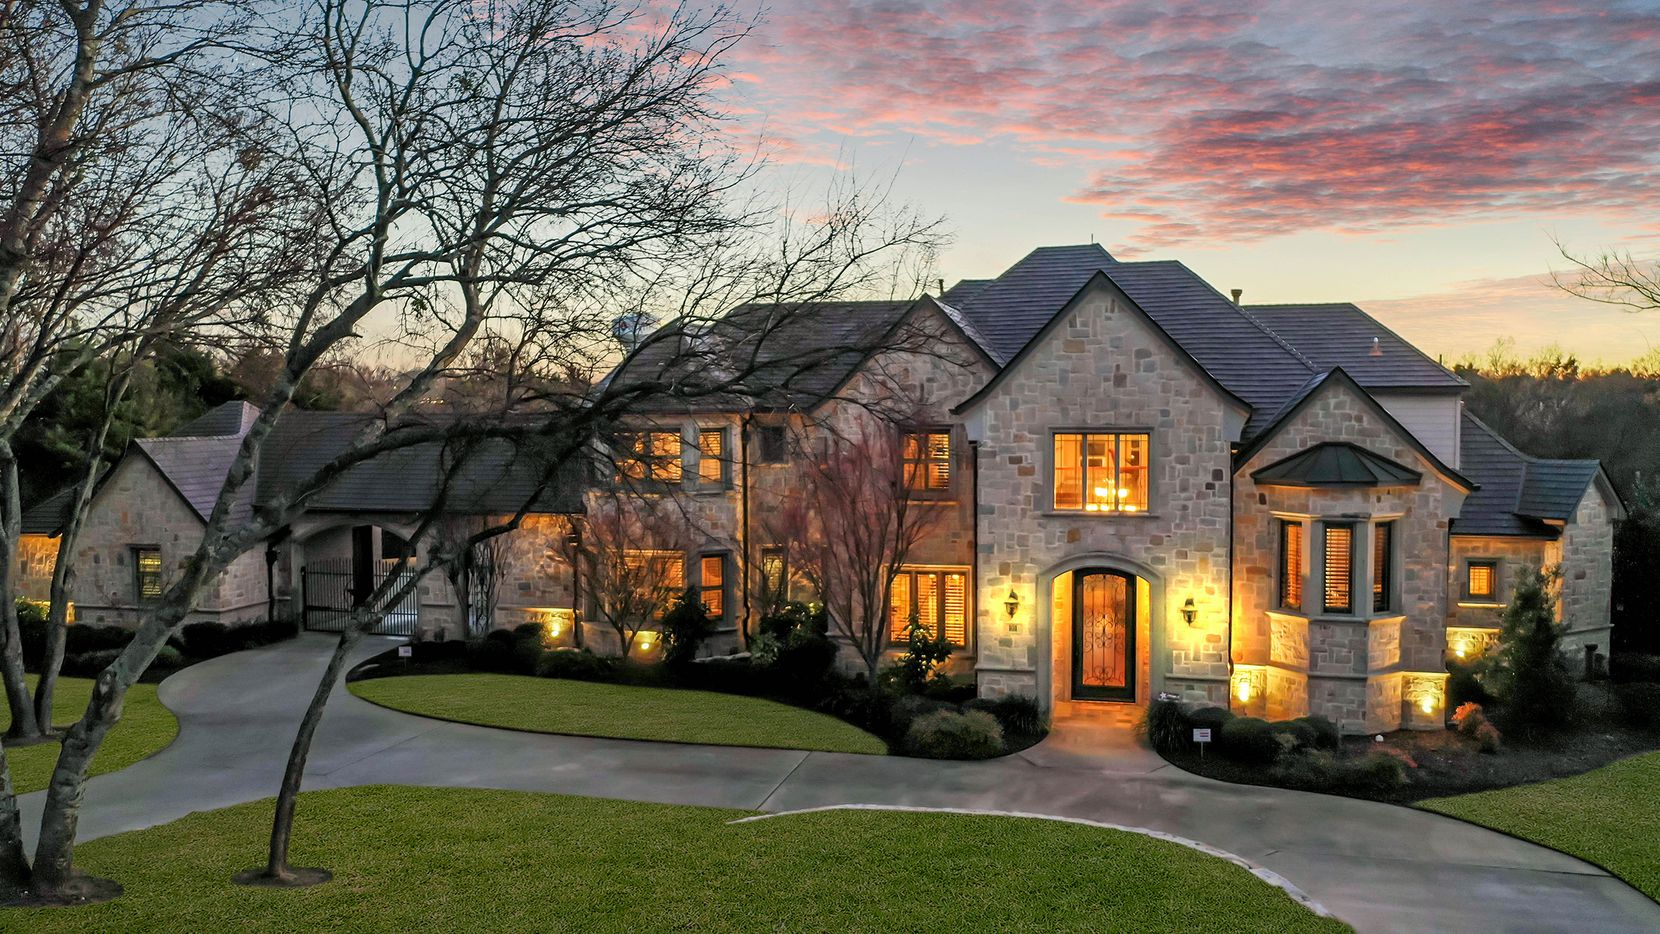 The French Provincial home situated on 1.46 acres at 101 Blue Heron in Heath is adjacent to a protected 10-acre bird sanctuary and overlooks Lake Ray Hubbard.